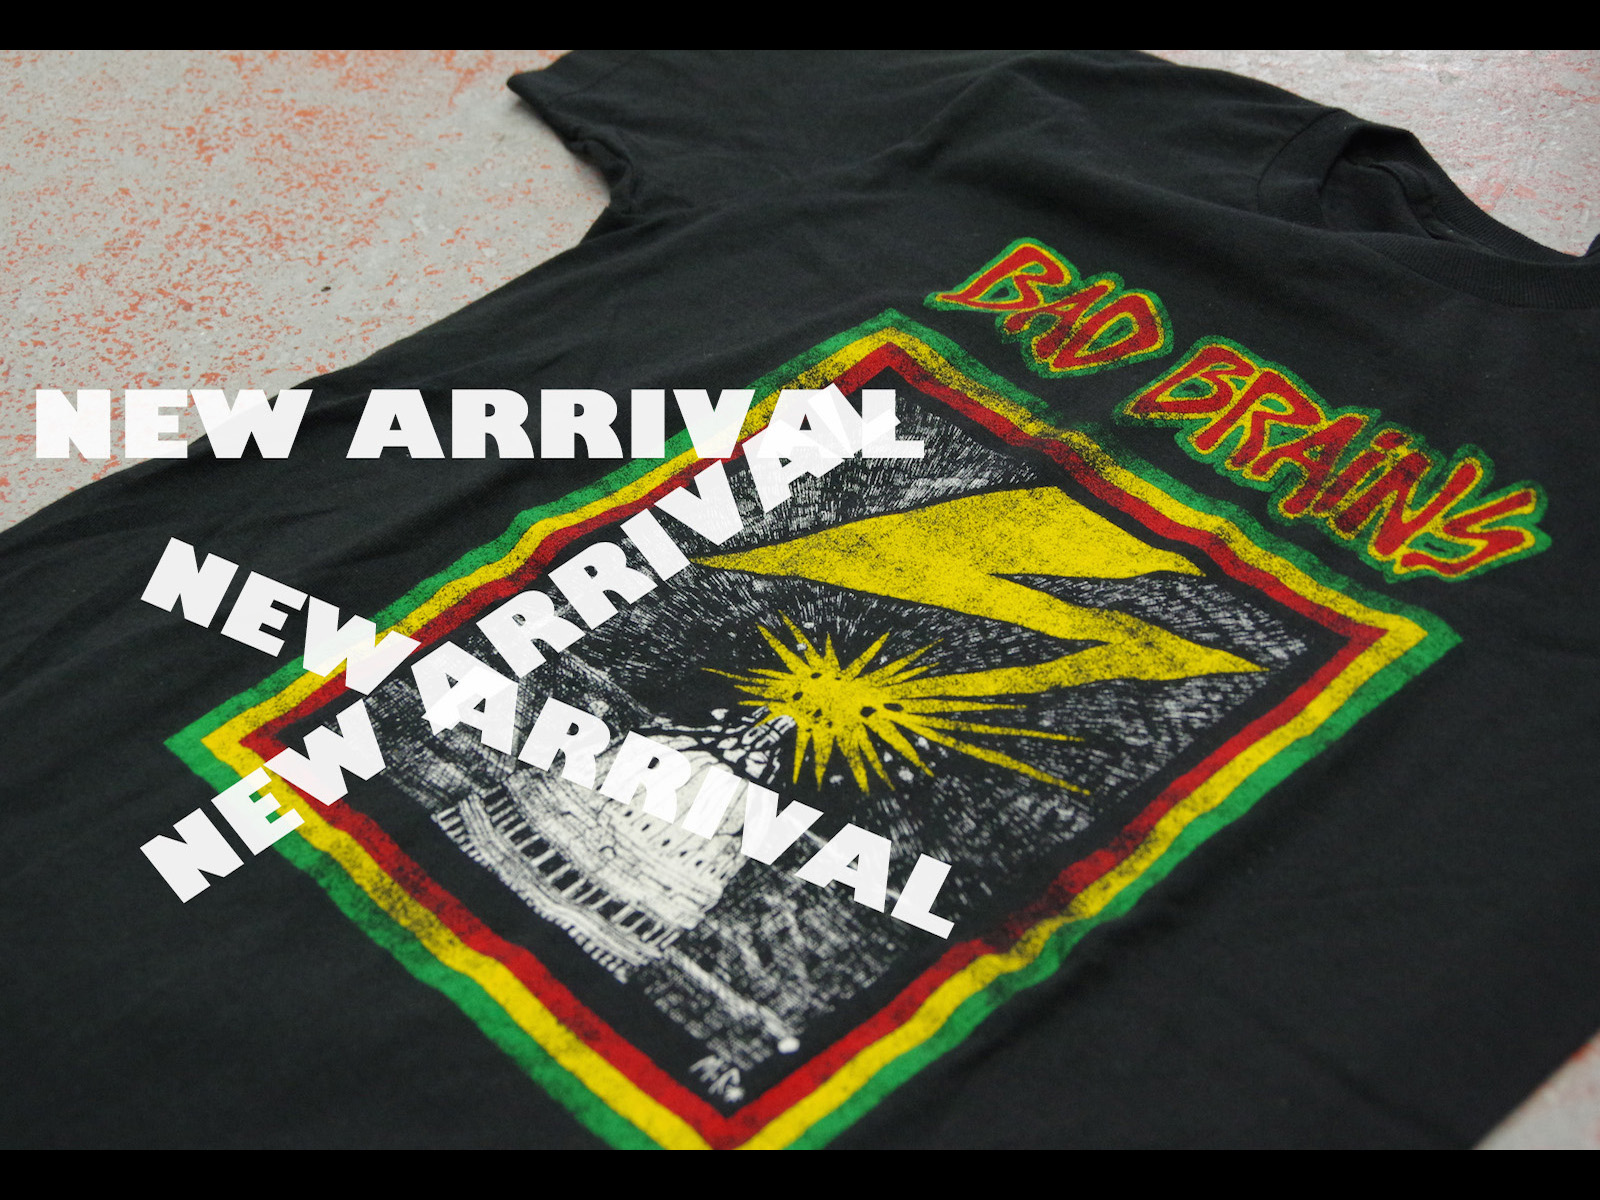 NEW ARRIVAL – BAD BRAINS